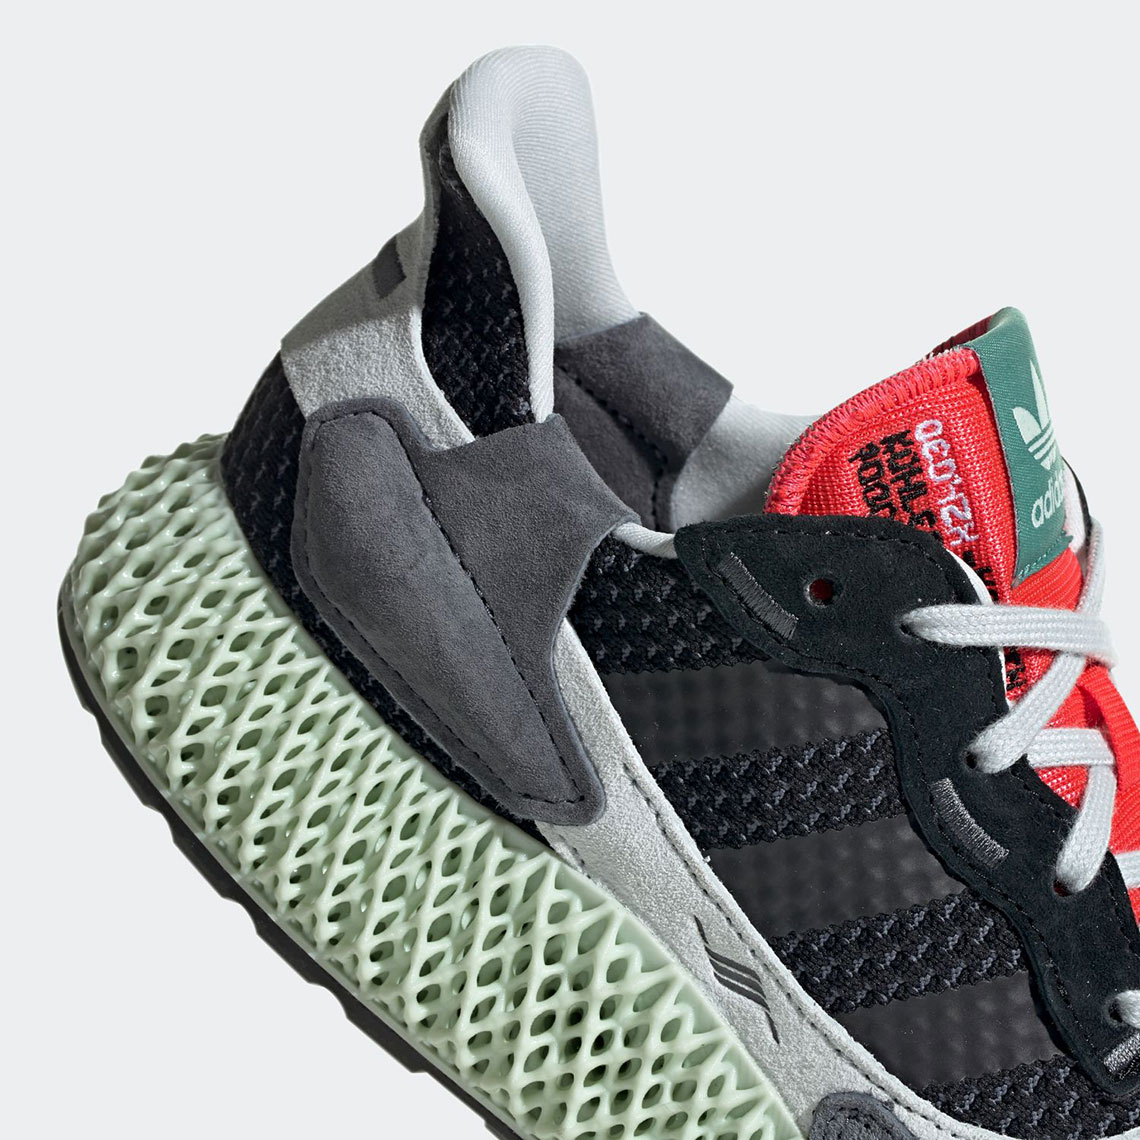 adidas 4d march 9